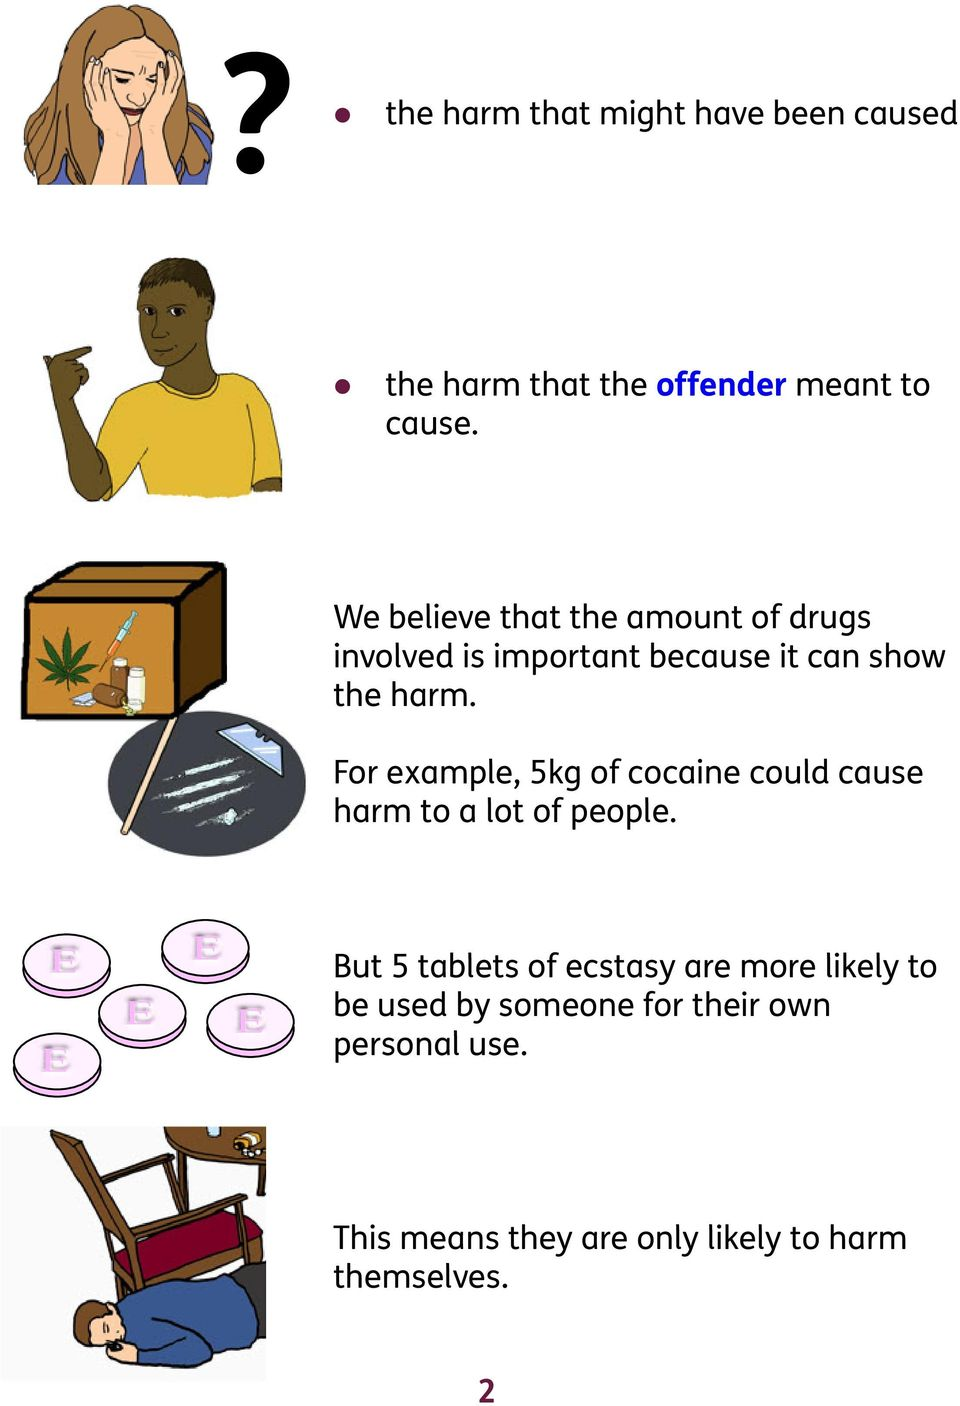 For example, 5kg of cocaine could cause harm to a lot of people.